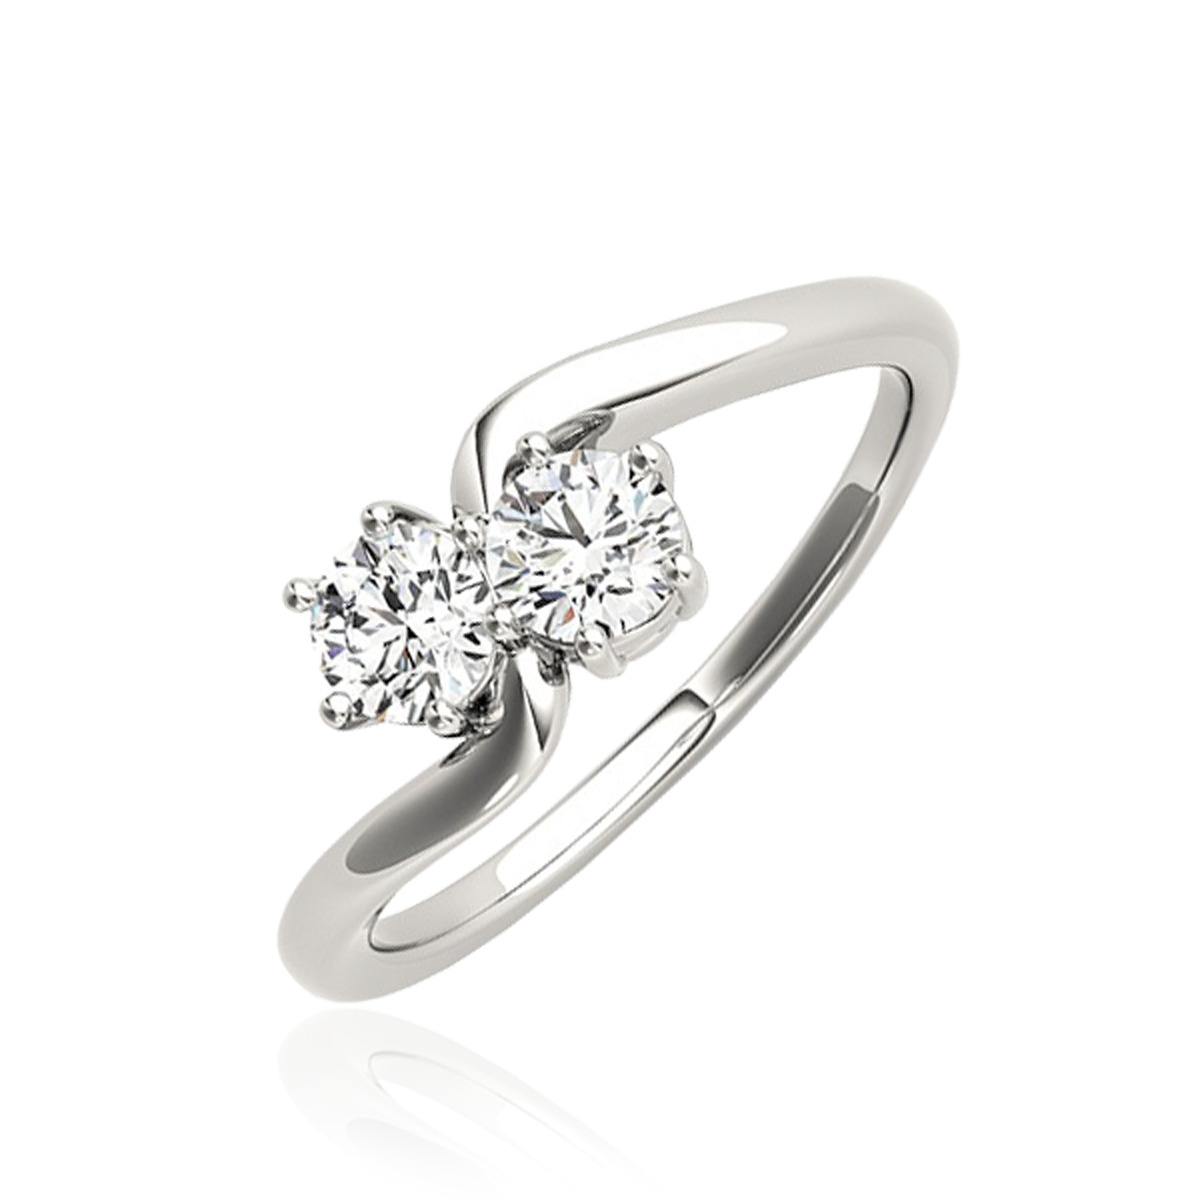 1/4 Carat T.W. Round Cut Diamond Two Stone Ring 10K White Gold